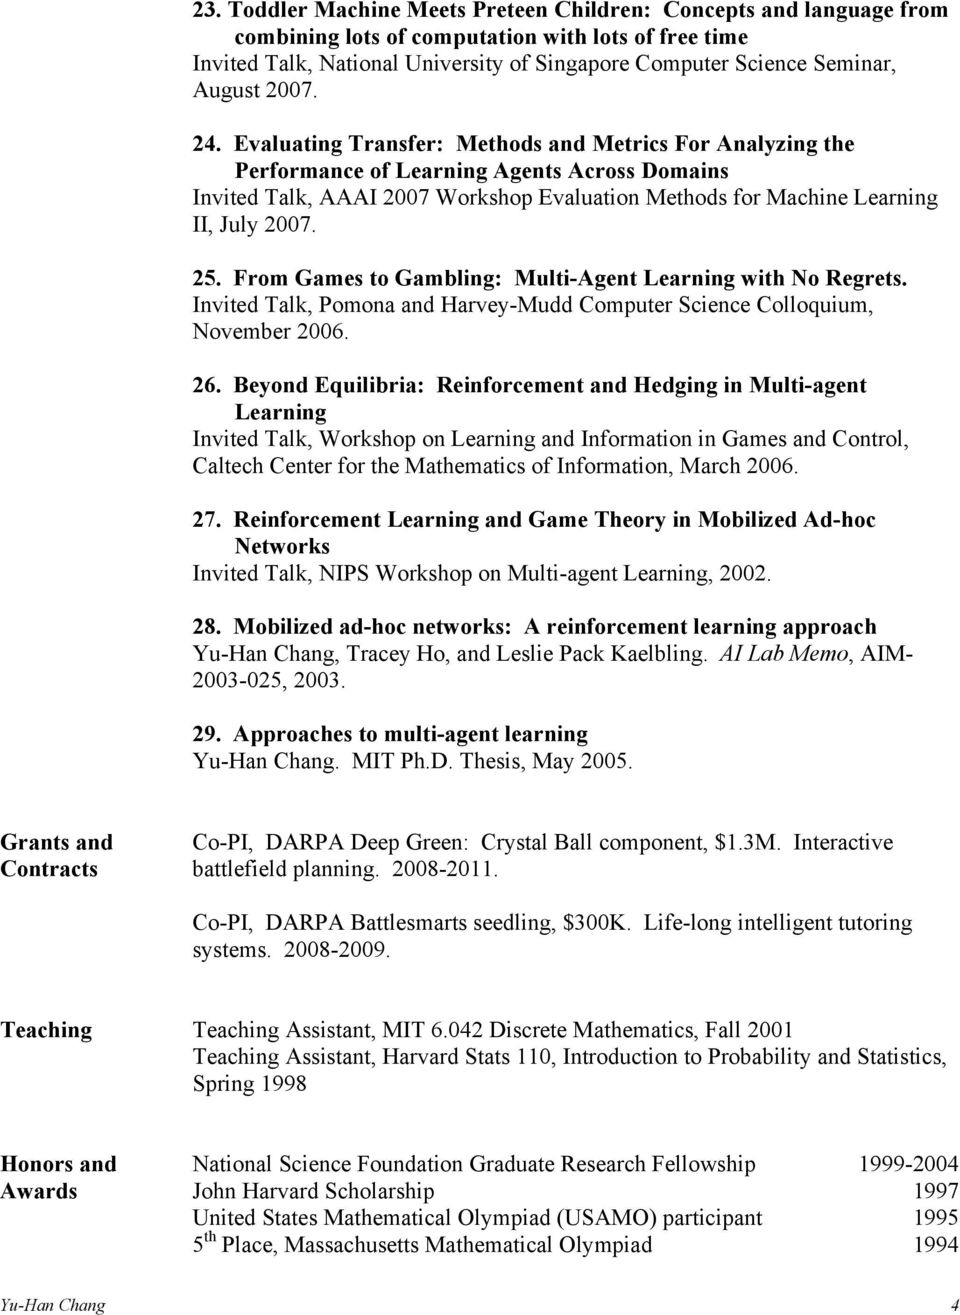 Evaluating Transfer: Methods and Metrics For Analyzing the Performance of Learning Agents Across Domains Invited Talk, AAAI 2007 Workshop Evaluation Methods for Machine Learning II, July 2007. 25.